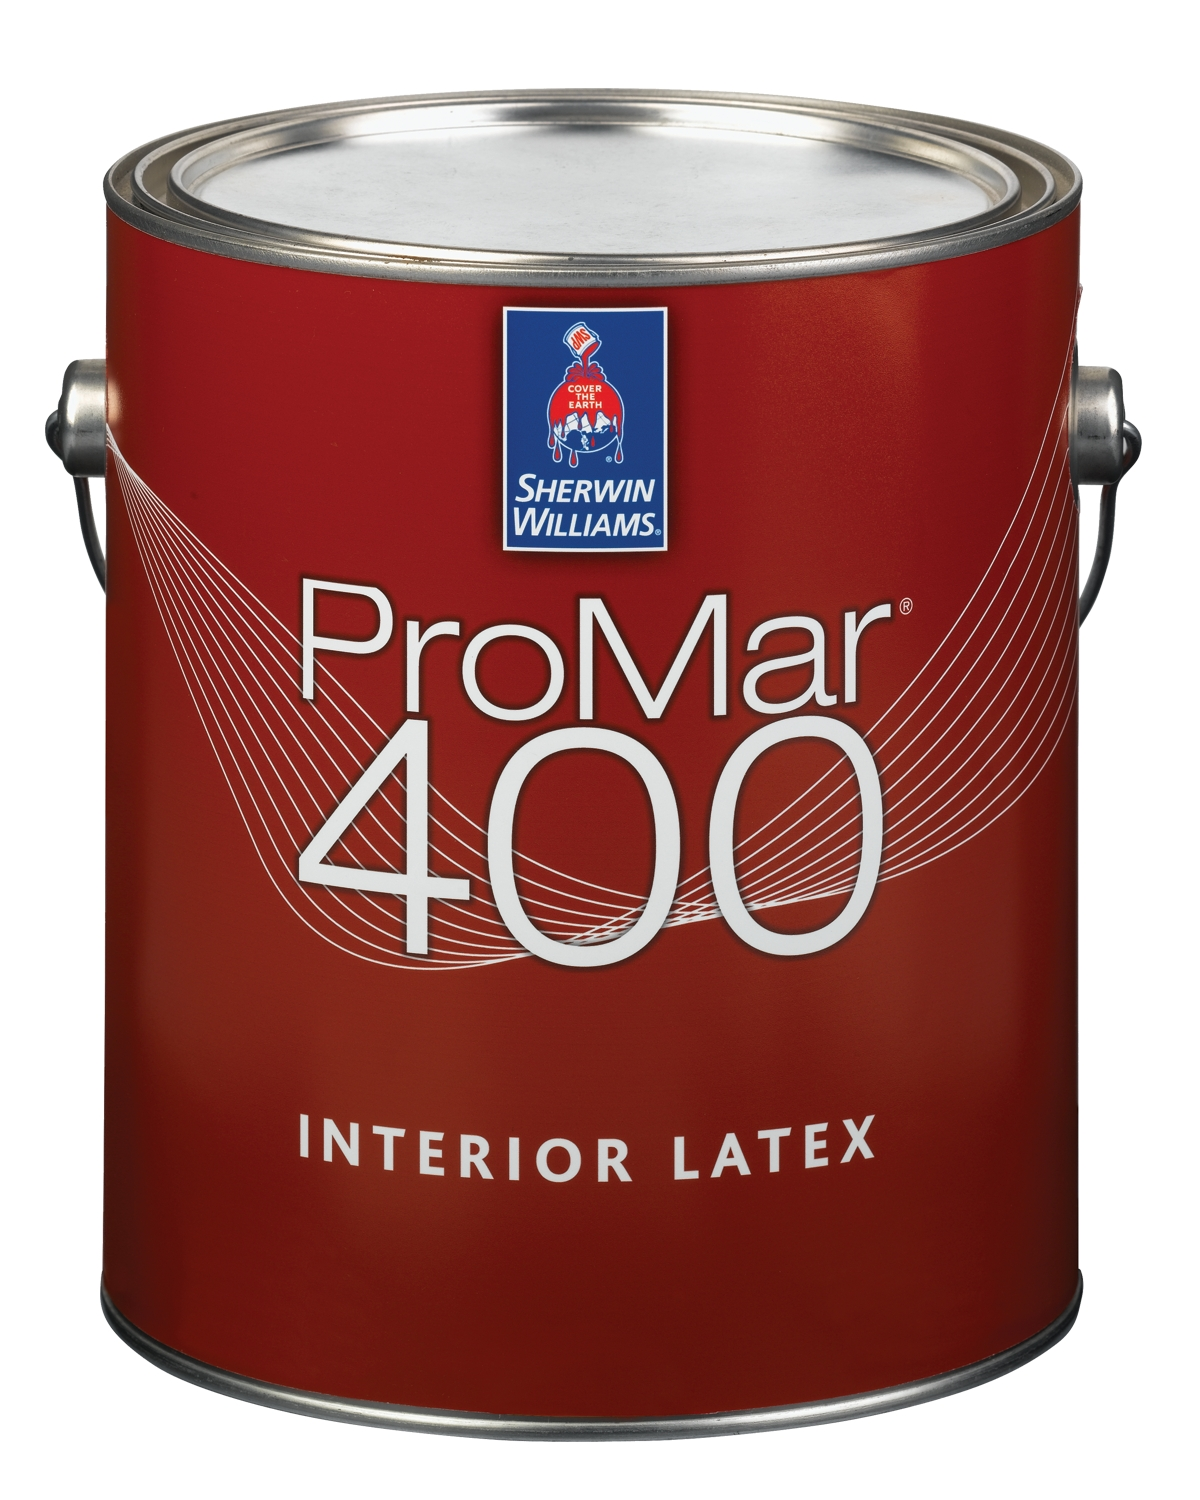 ProMar 400 Interior Latex